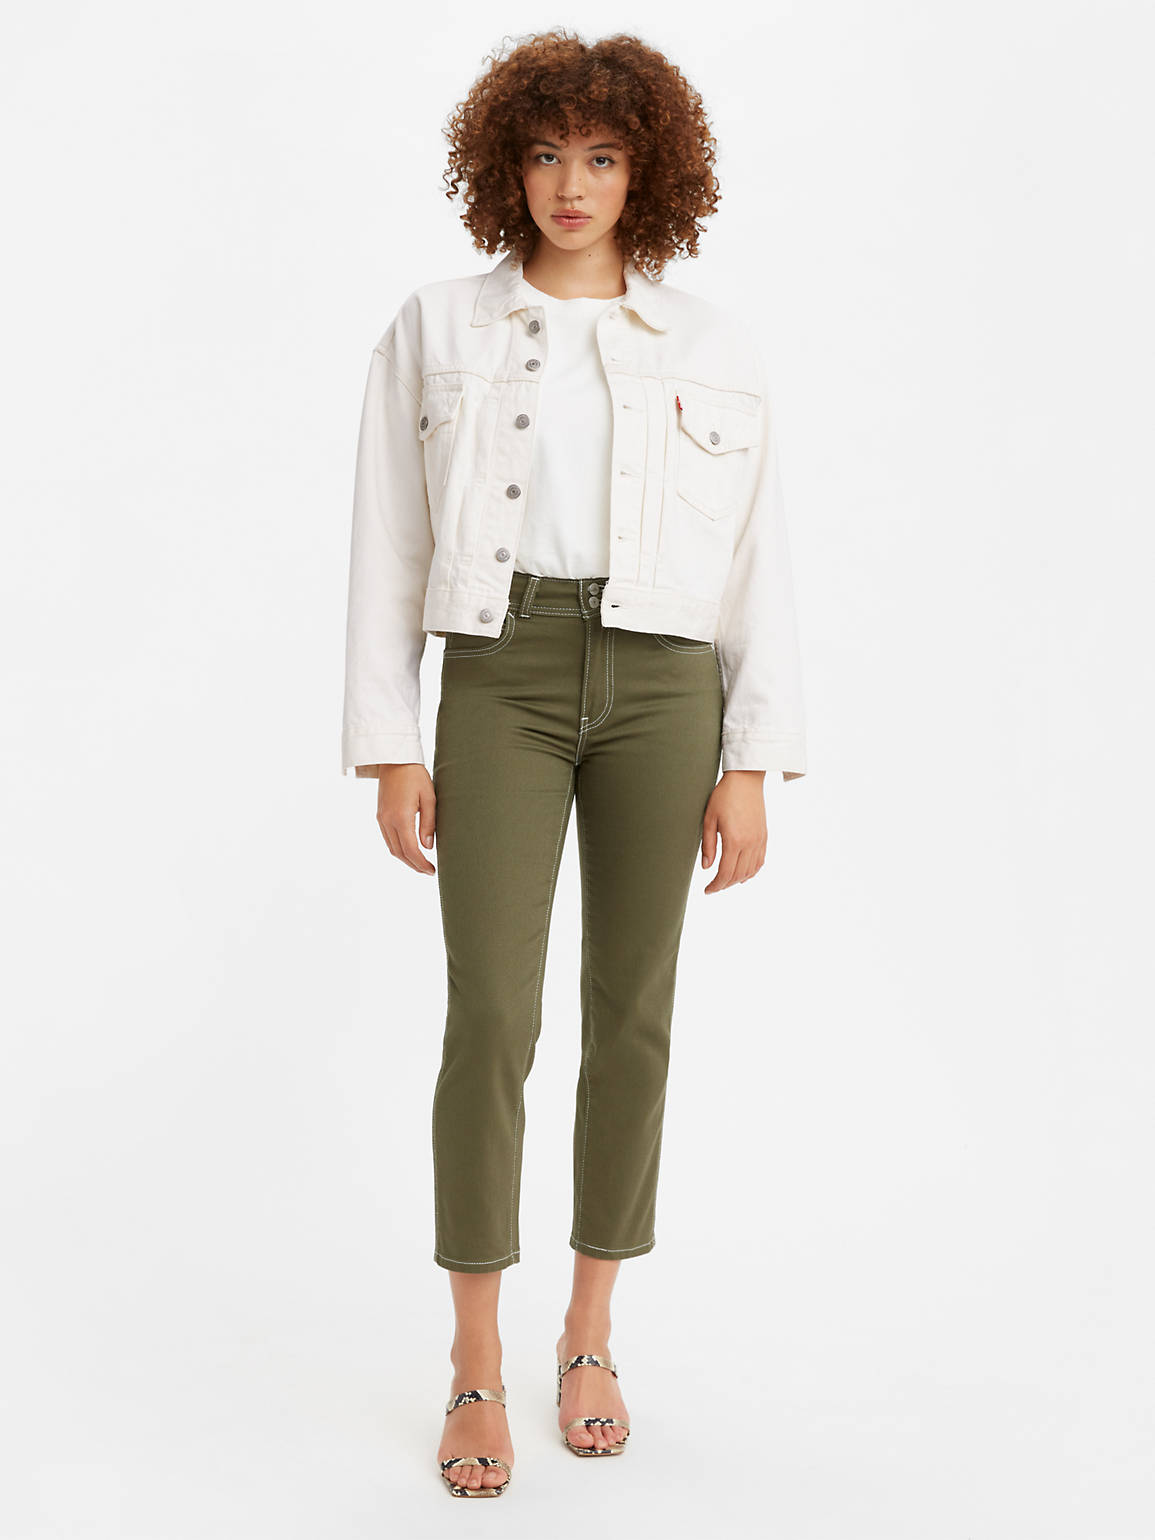 LEVI'S: HIGH RISE CARPENTER CROP WOMEN'S JEANS $16.97